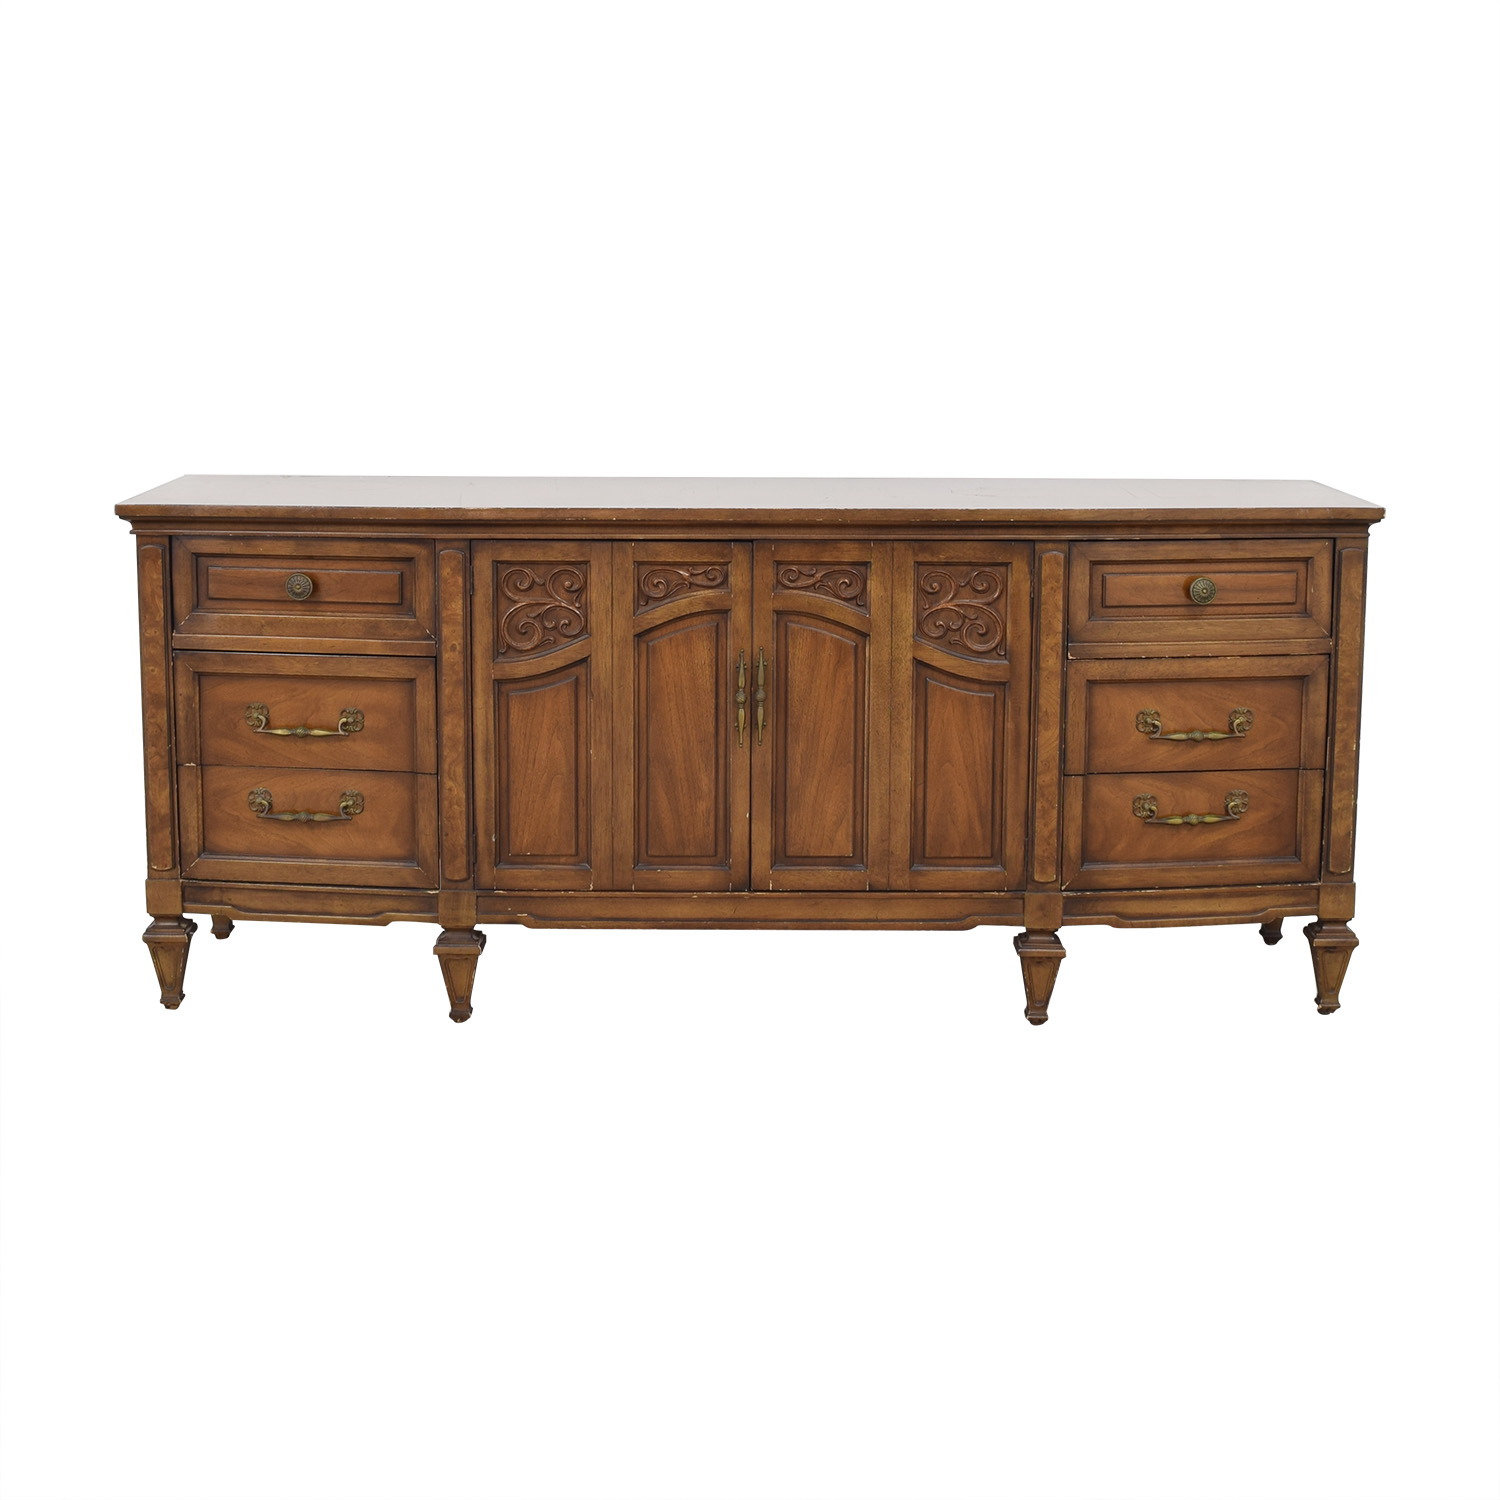 Hoke Furniture Company Hoke Furniture Triple Dresser for sale